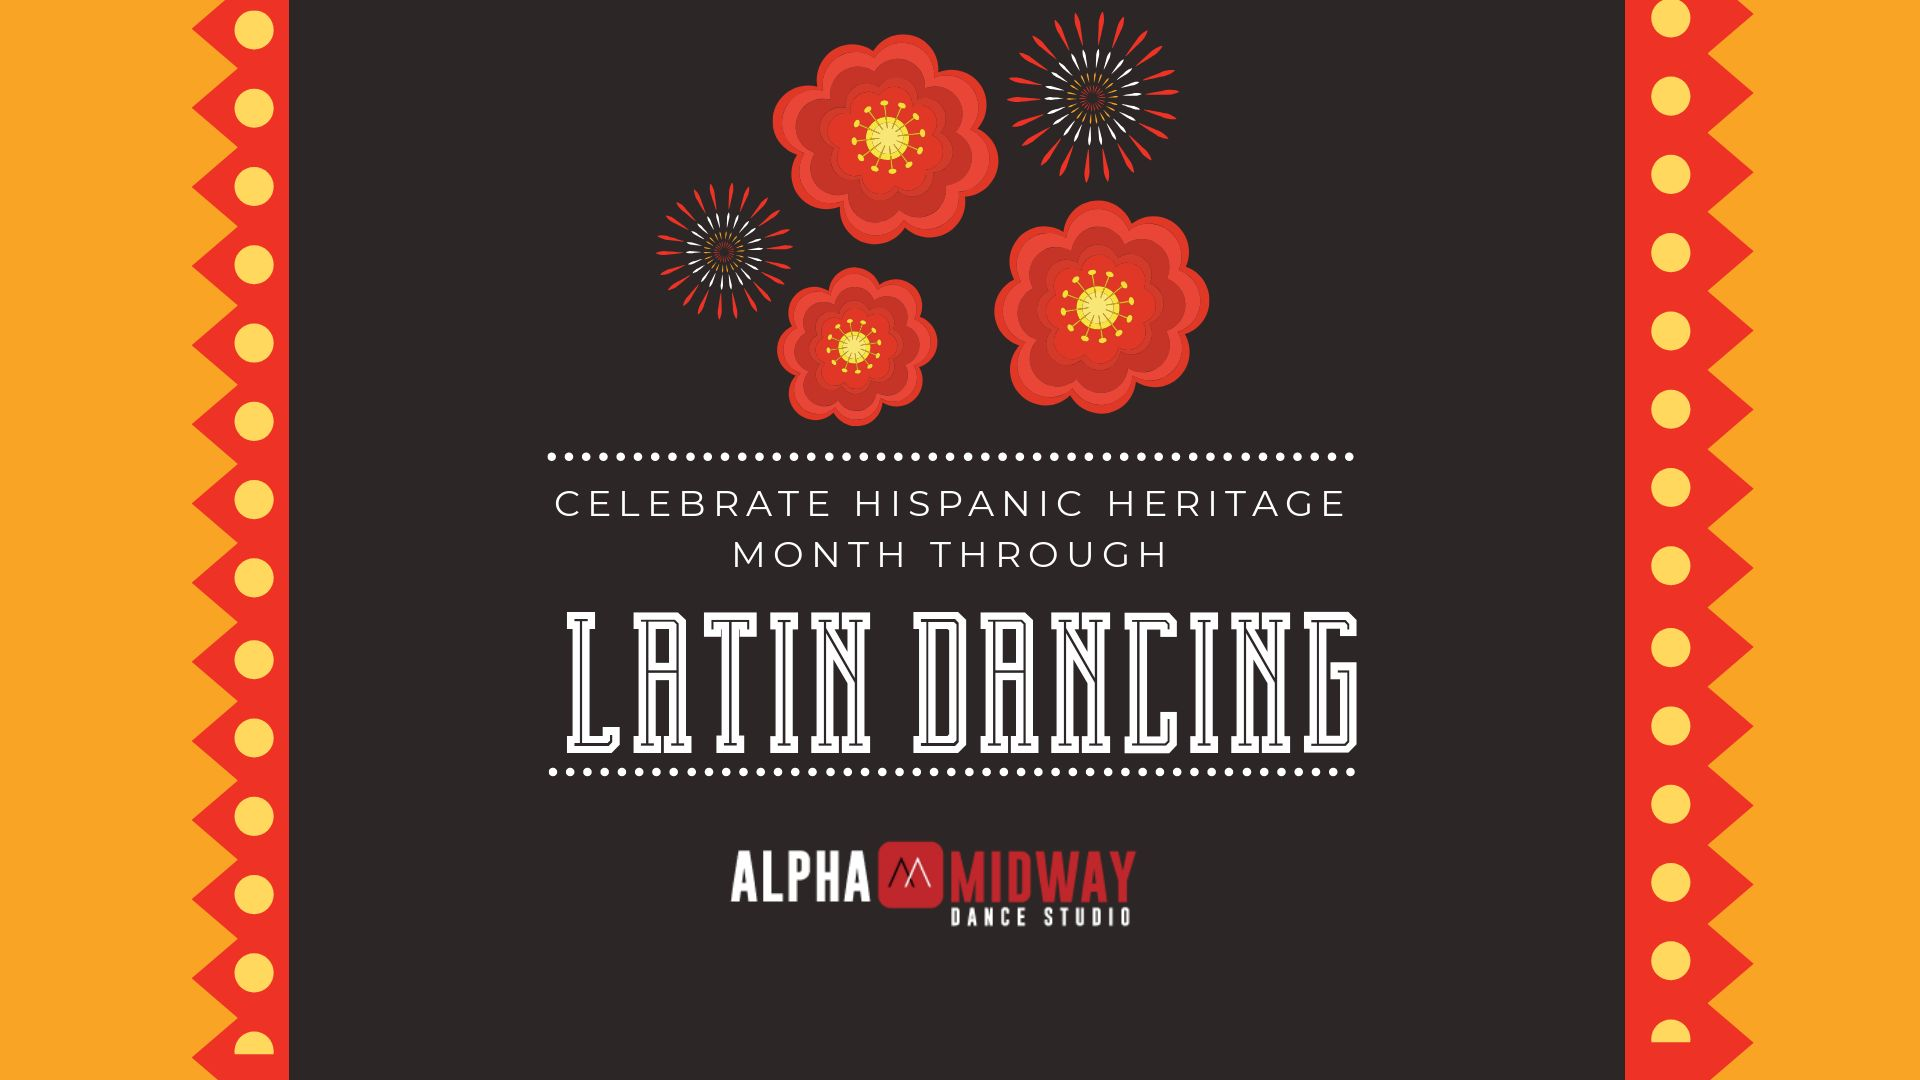 Hispanic Heritage Month | Latin Dancing | Salsa Dancers | DFW | Dallas